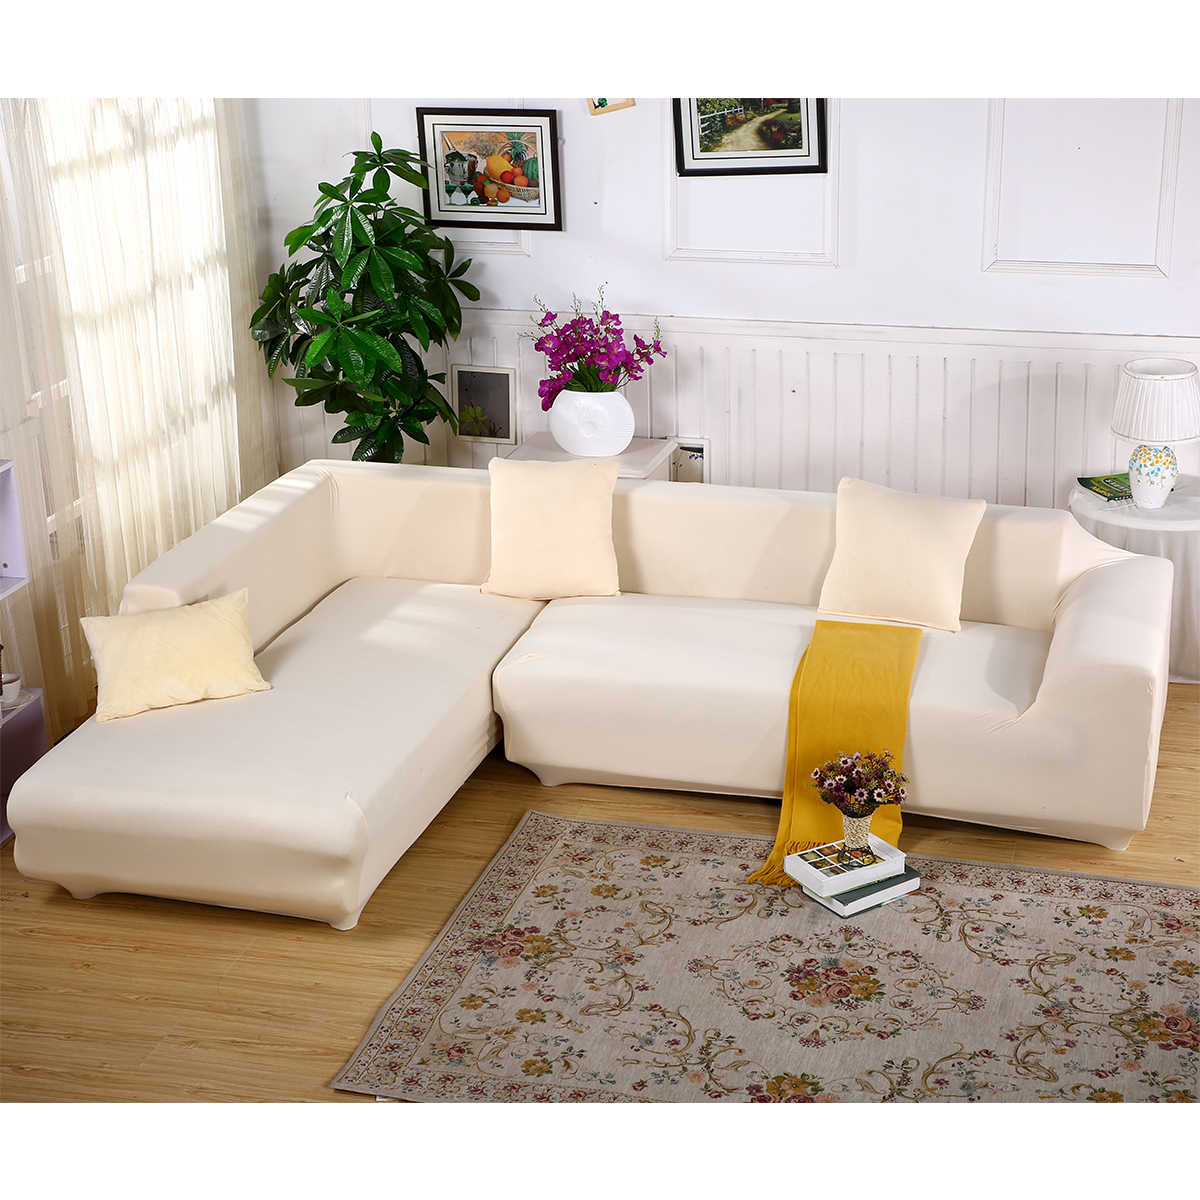 Covering A Sofa With Fabric: 1/2/3/4/5/6 Seater L Shape Stretch Elastic Fabric Sofa